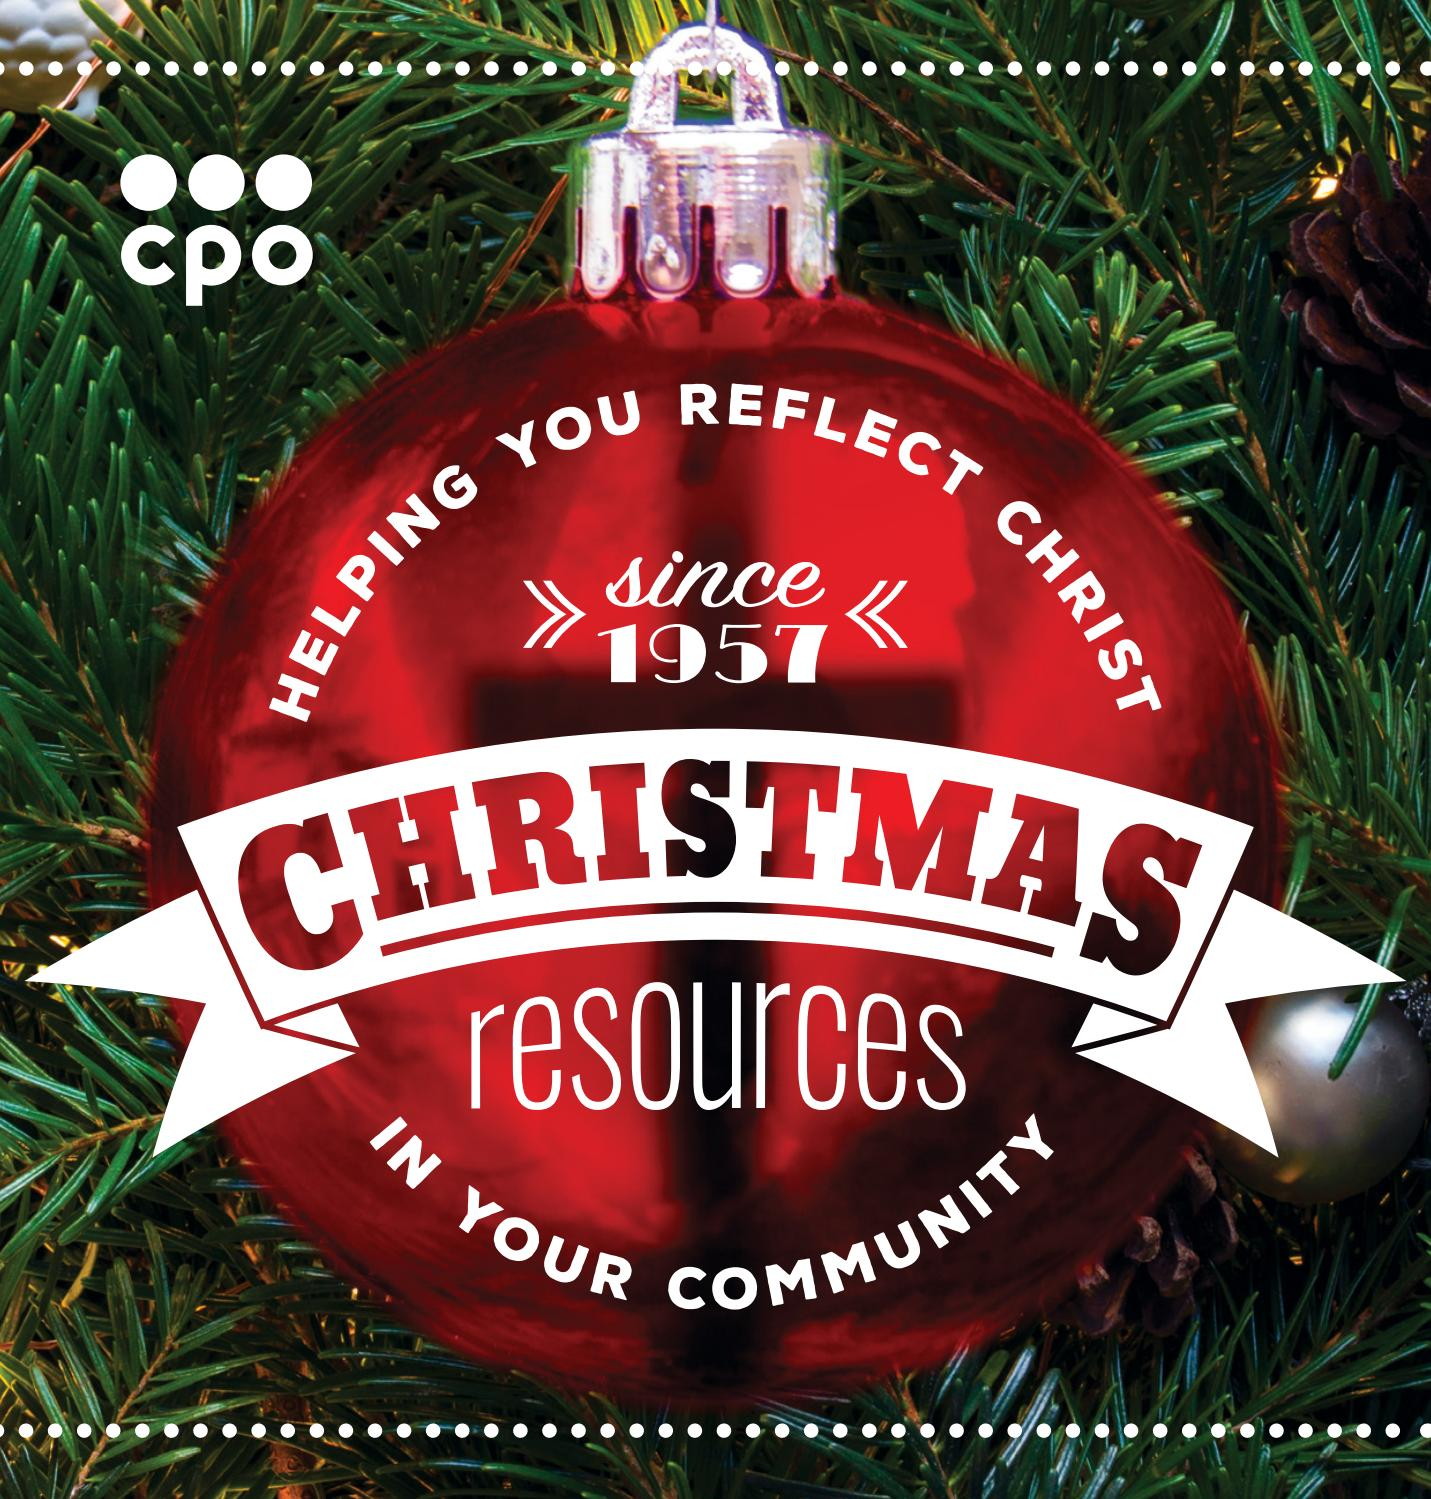 CPO Christmas Resources 2016 by CPO resources issuu